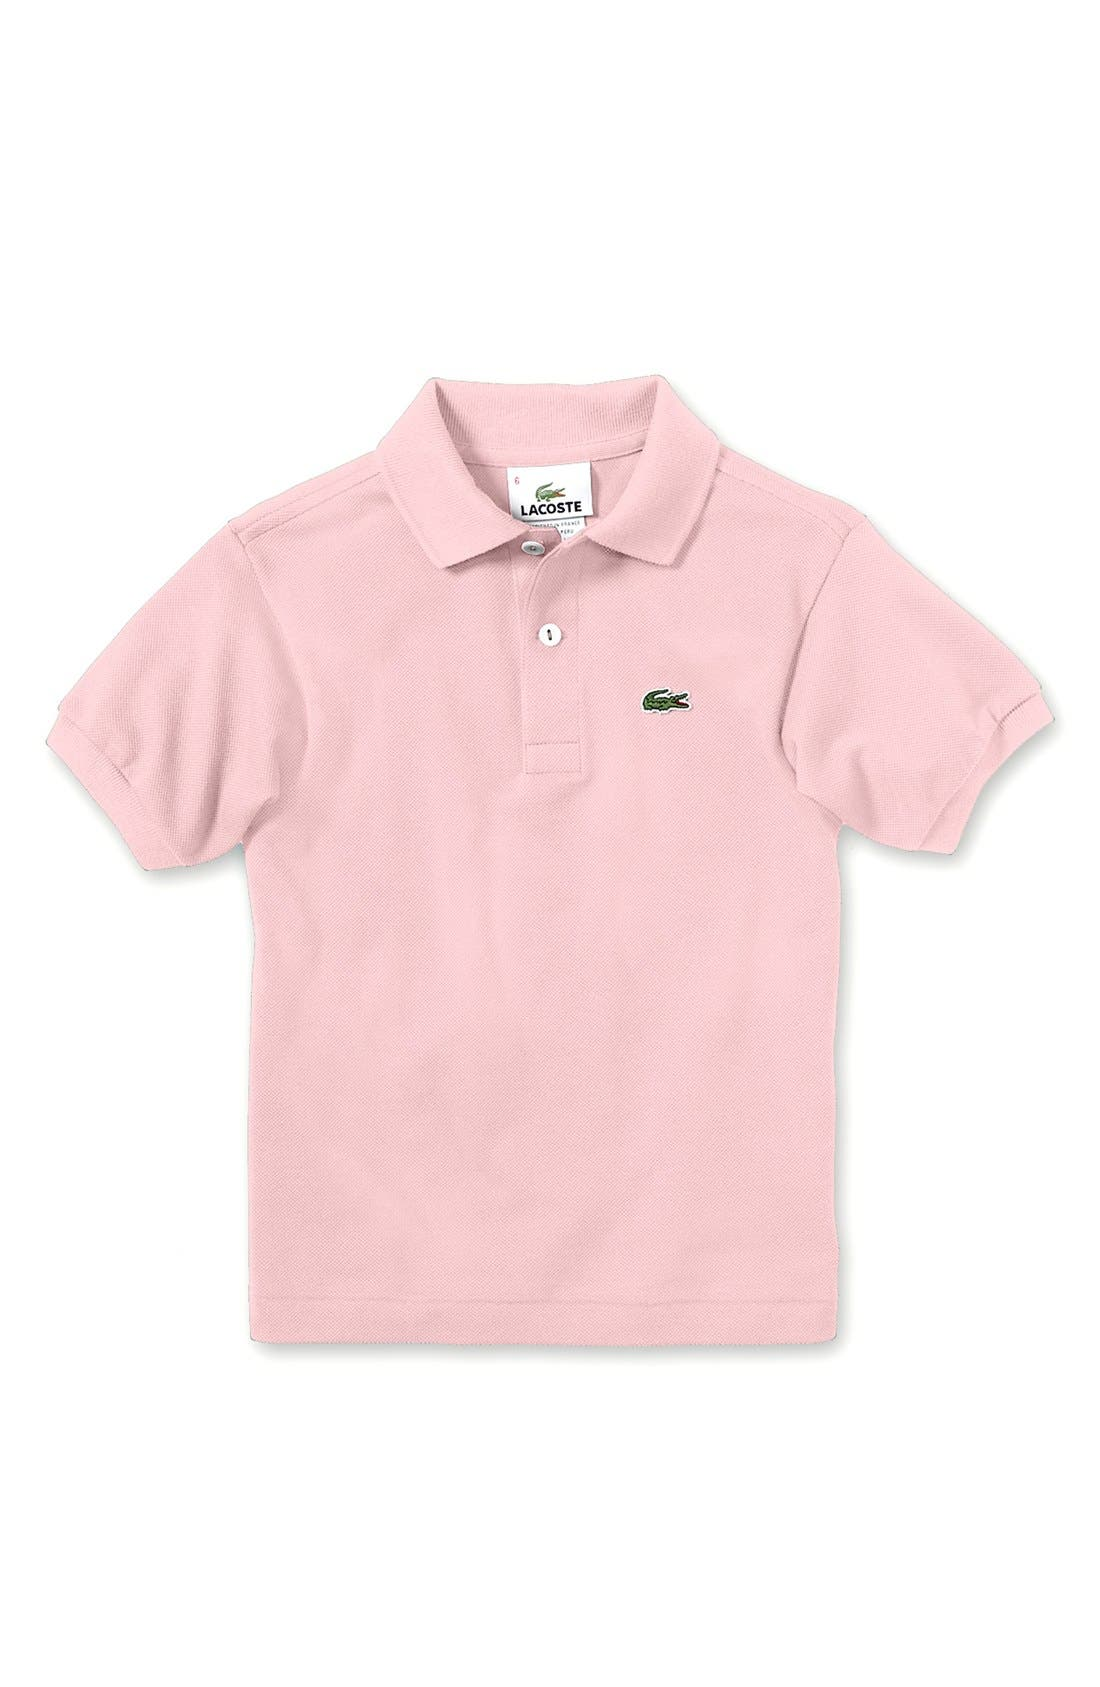 Alternate Image 1 Selected - Lacoste Short Sleeve Polo (Baby Boys)